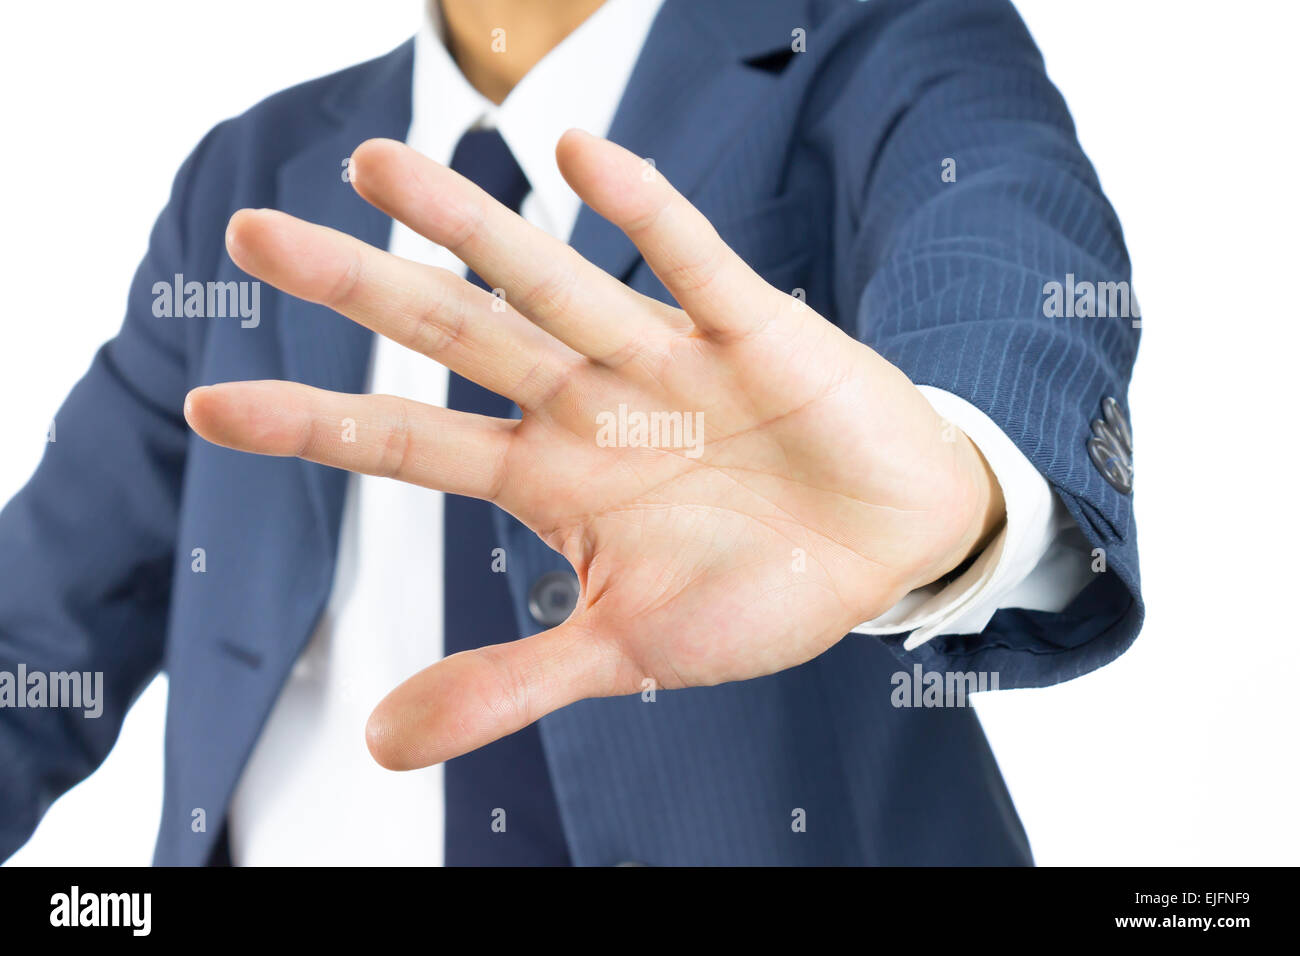 Businessman in Blue Suit Show Stop Sign of Hand on Tilt View Isolated on White Background. Concept about Stopping - Stock Image